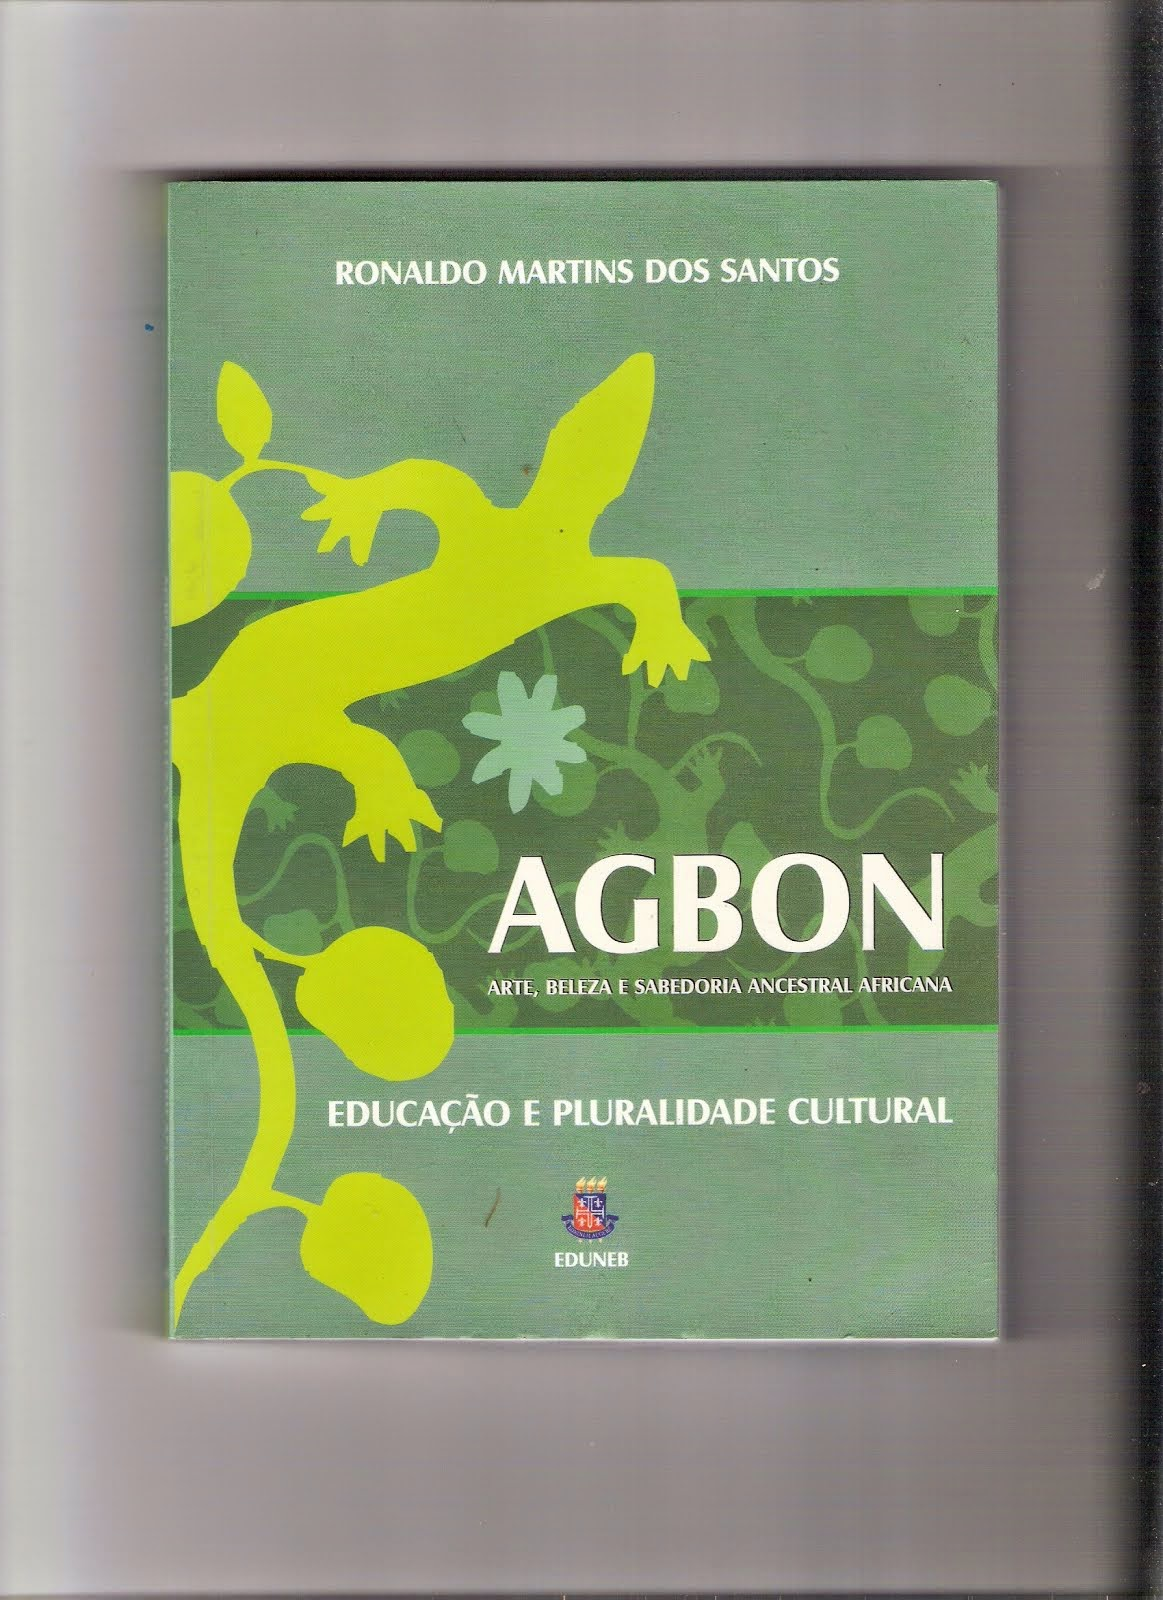 BLOG DA ACRA INDICA: Livro AGBON - ARTE, BELEZA E SABEDORIA ANCESTRAL AFRICANA